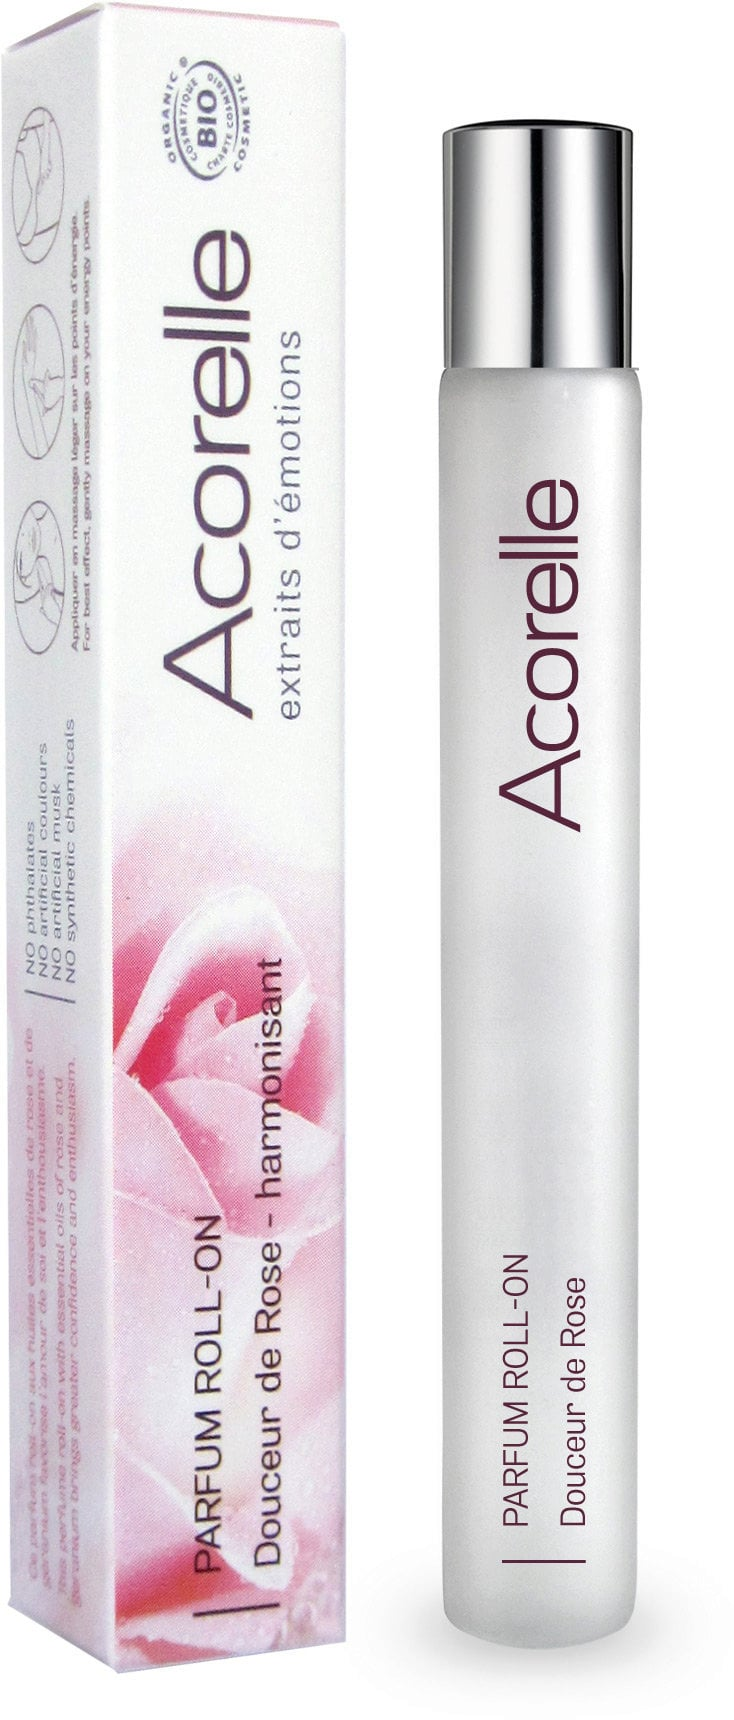 ACORELLE EDP Roll-on Douceur de Rose/Růže